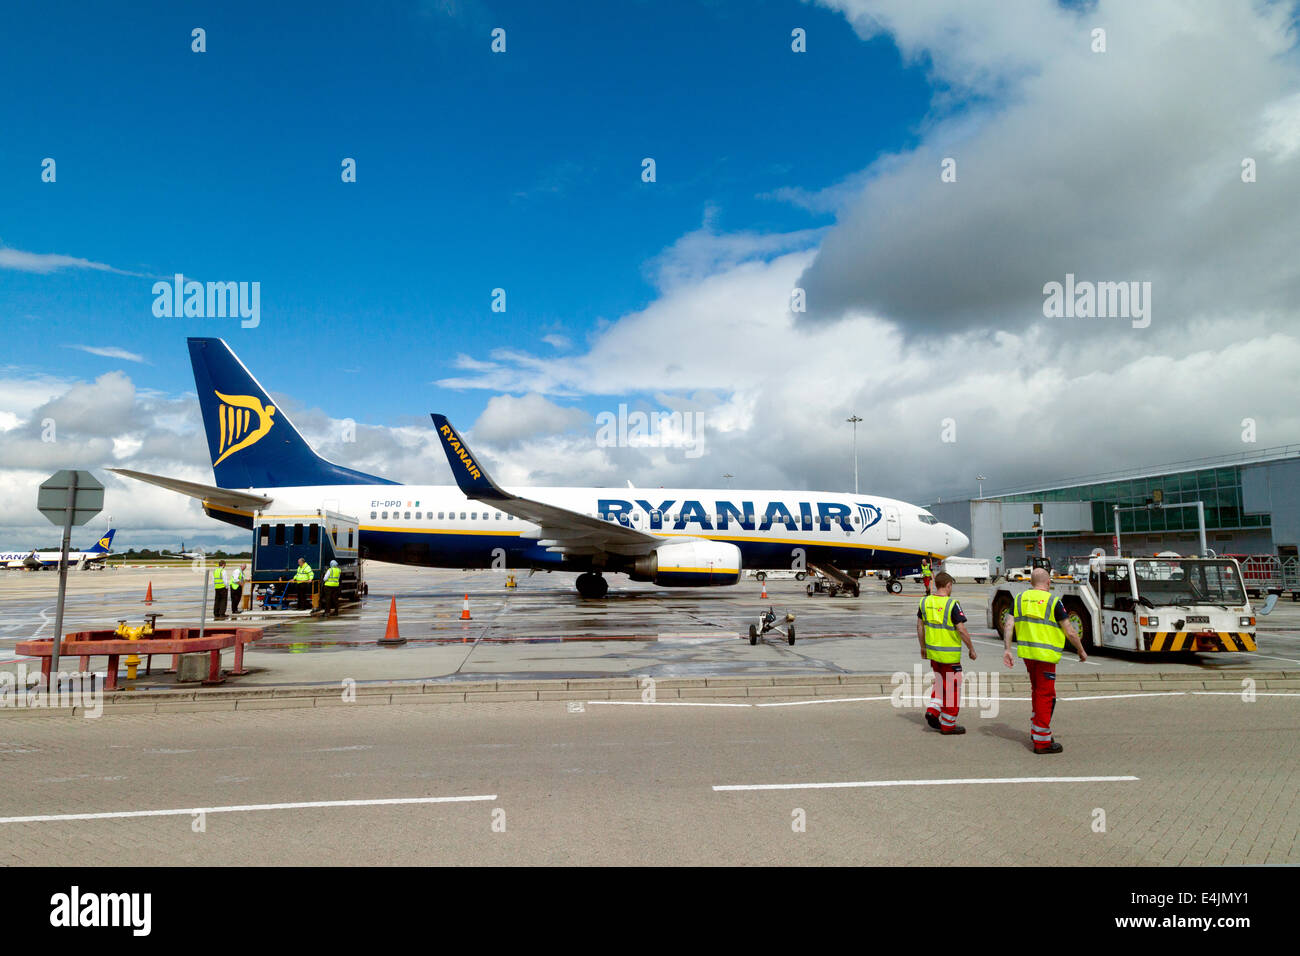 A Ryanair plane on the tarmac, Stansted Airport, London UK - Stock Image